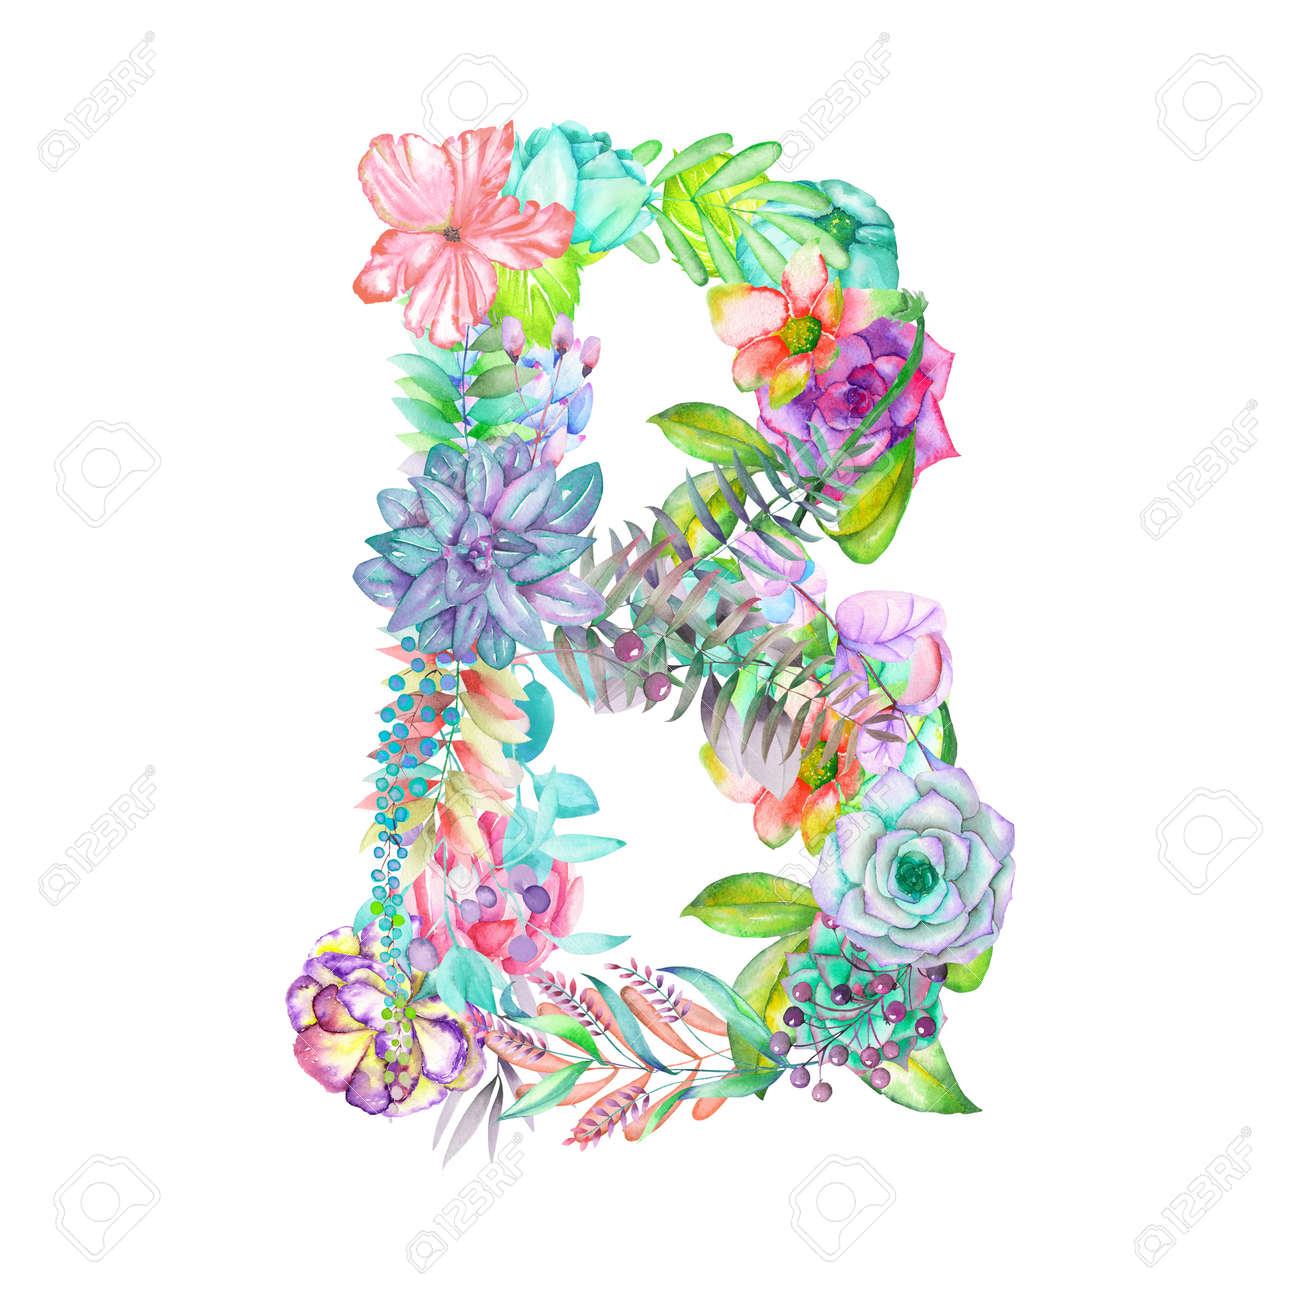 capital letter b of watercolor flowers isolated hand drawn on a white background wedding